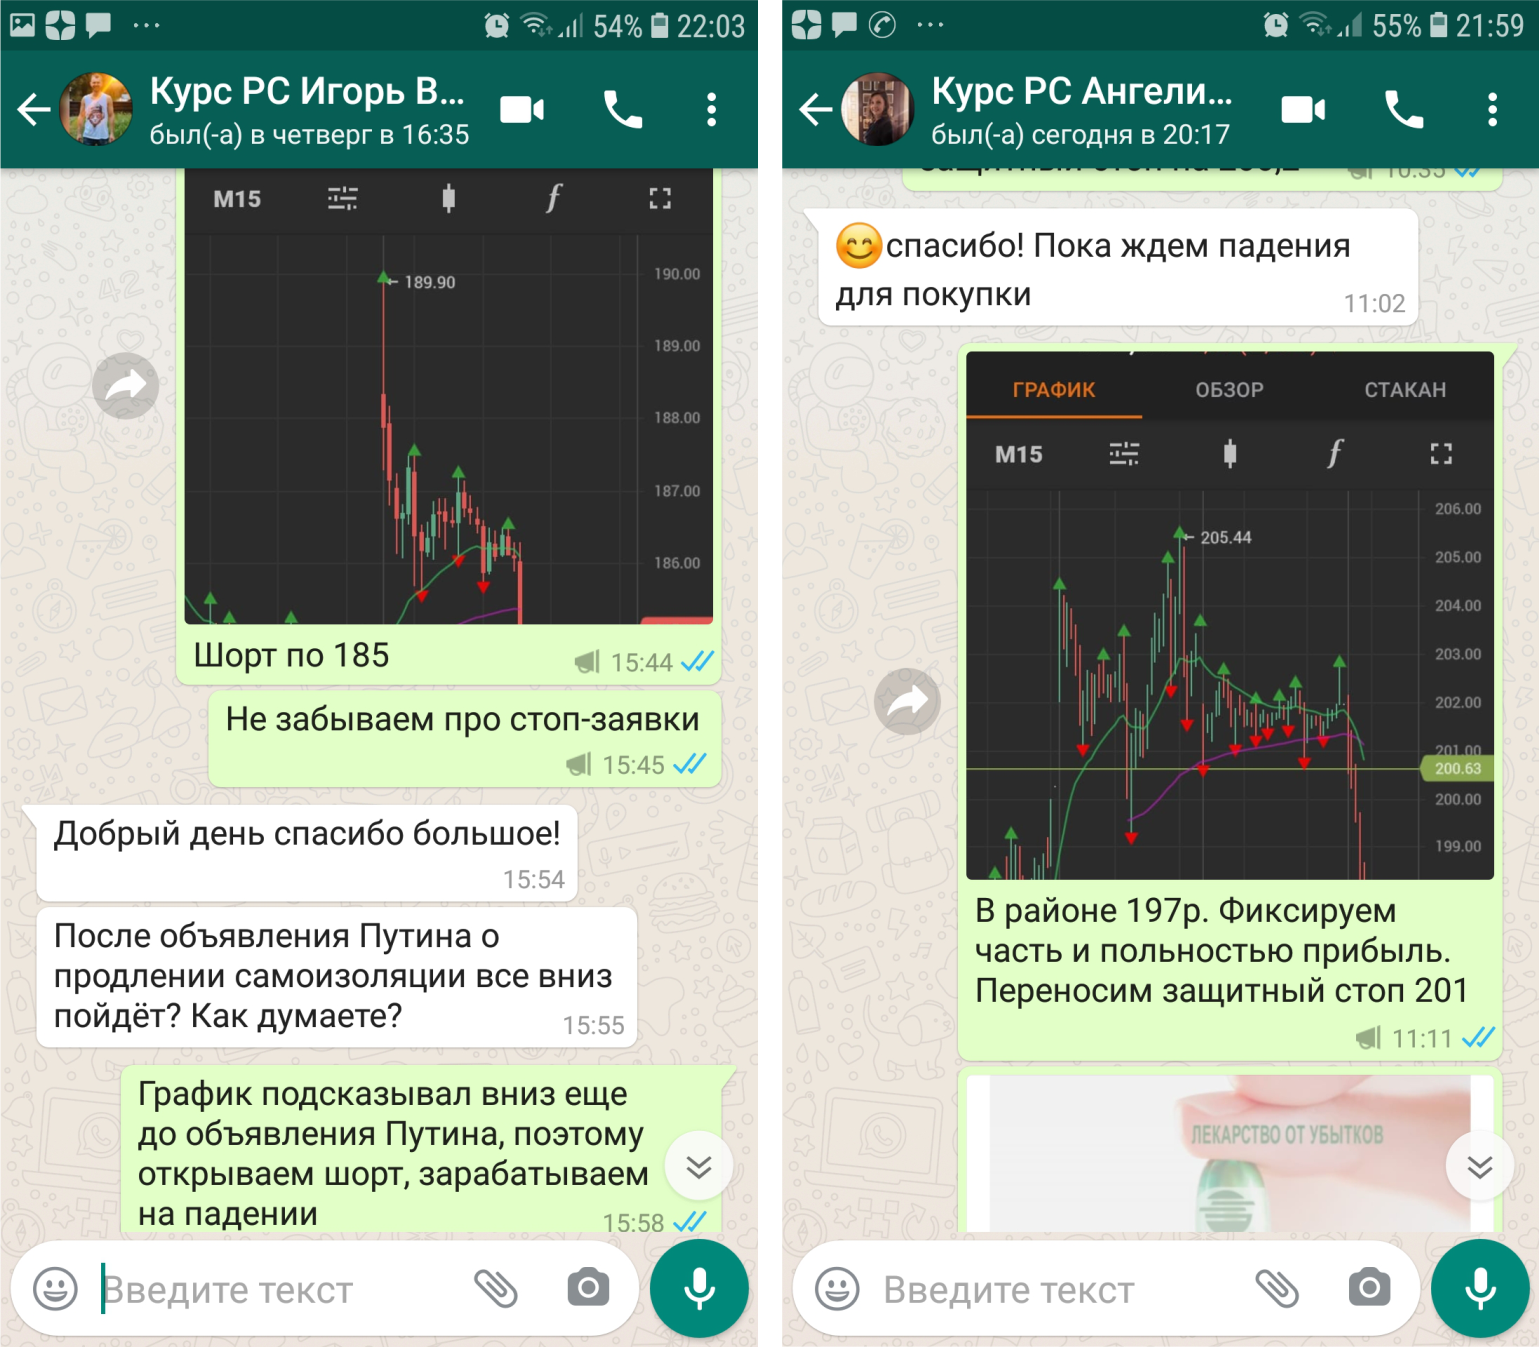 Как выглядит WhatsApp поддержка или сигналы на канале Телеграм?